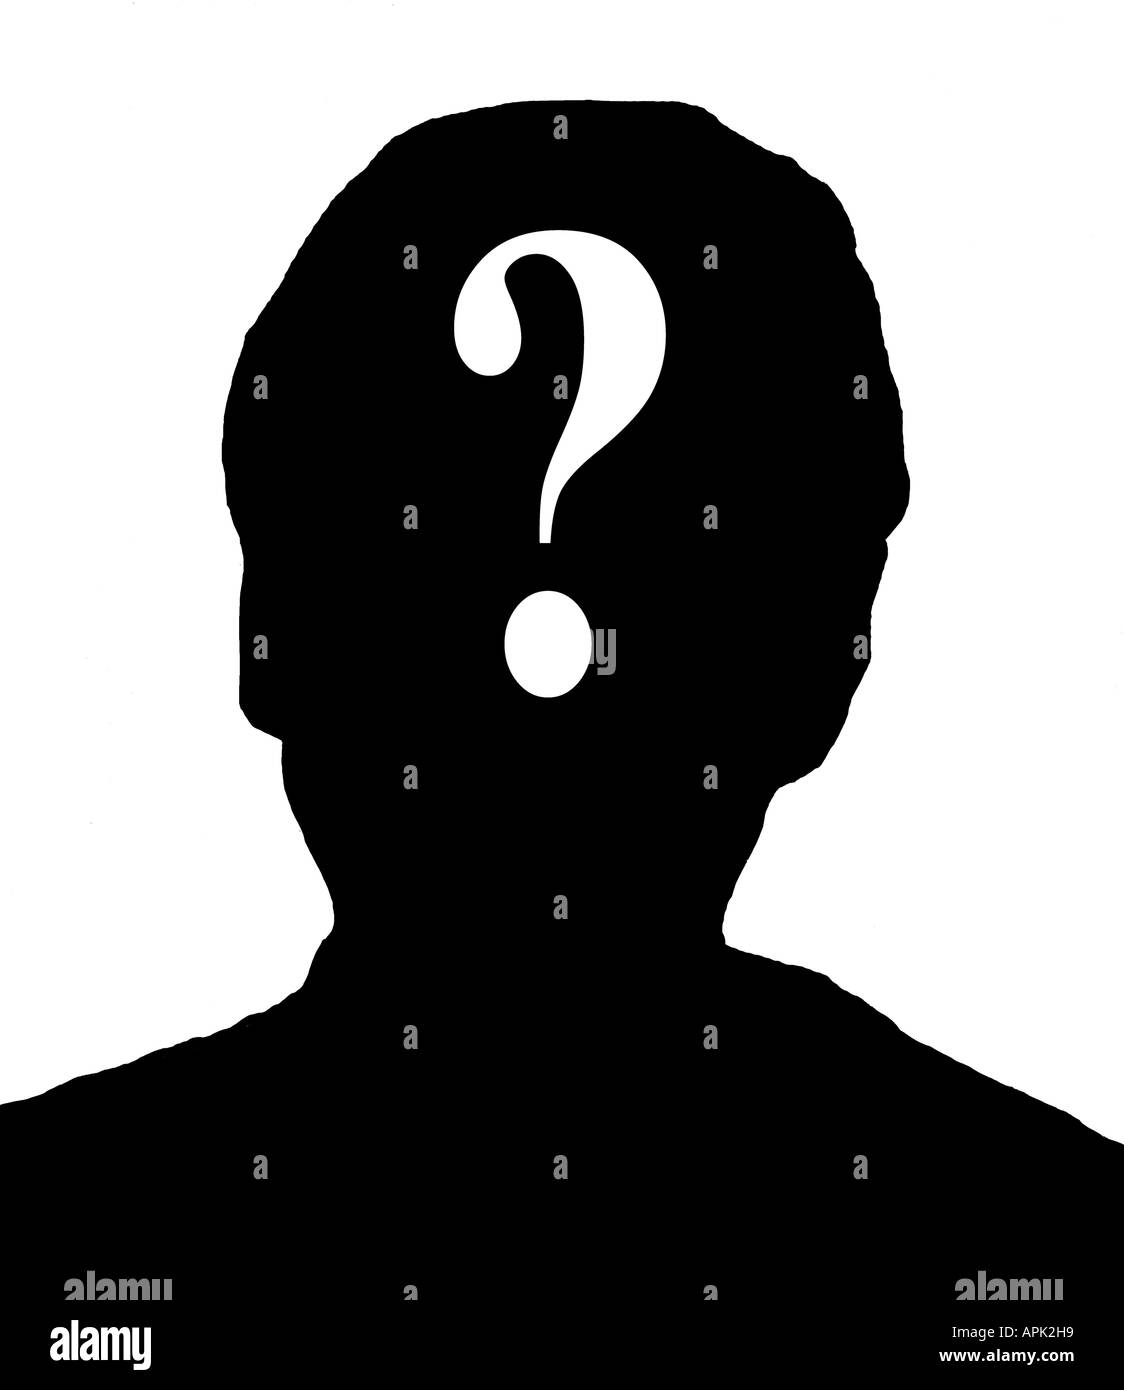 silhouette of male head with question mark composited over face - Stock Image